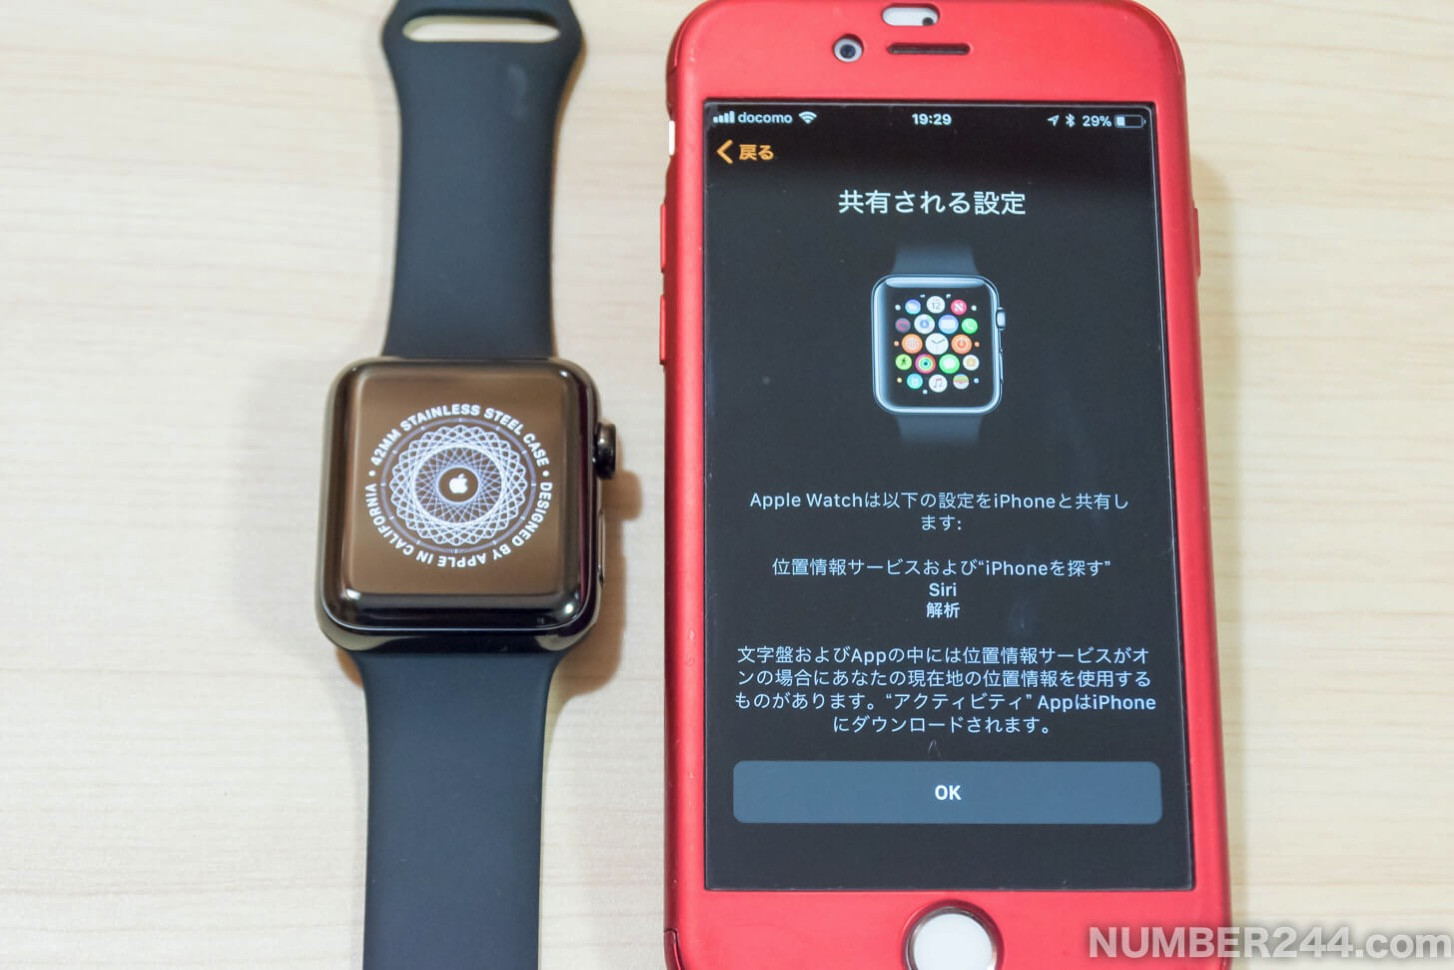 Initial setting of Apple Watch 11